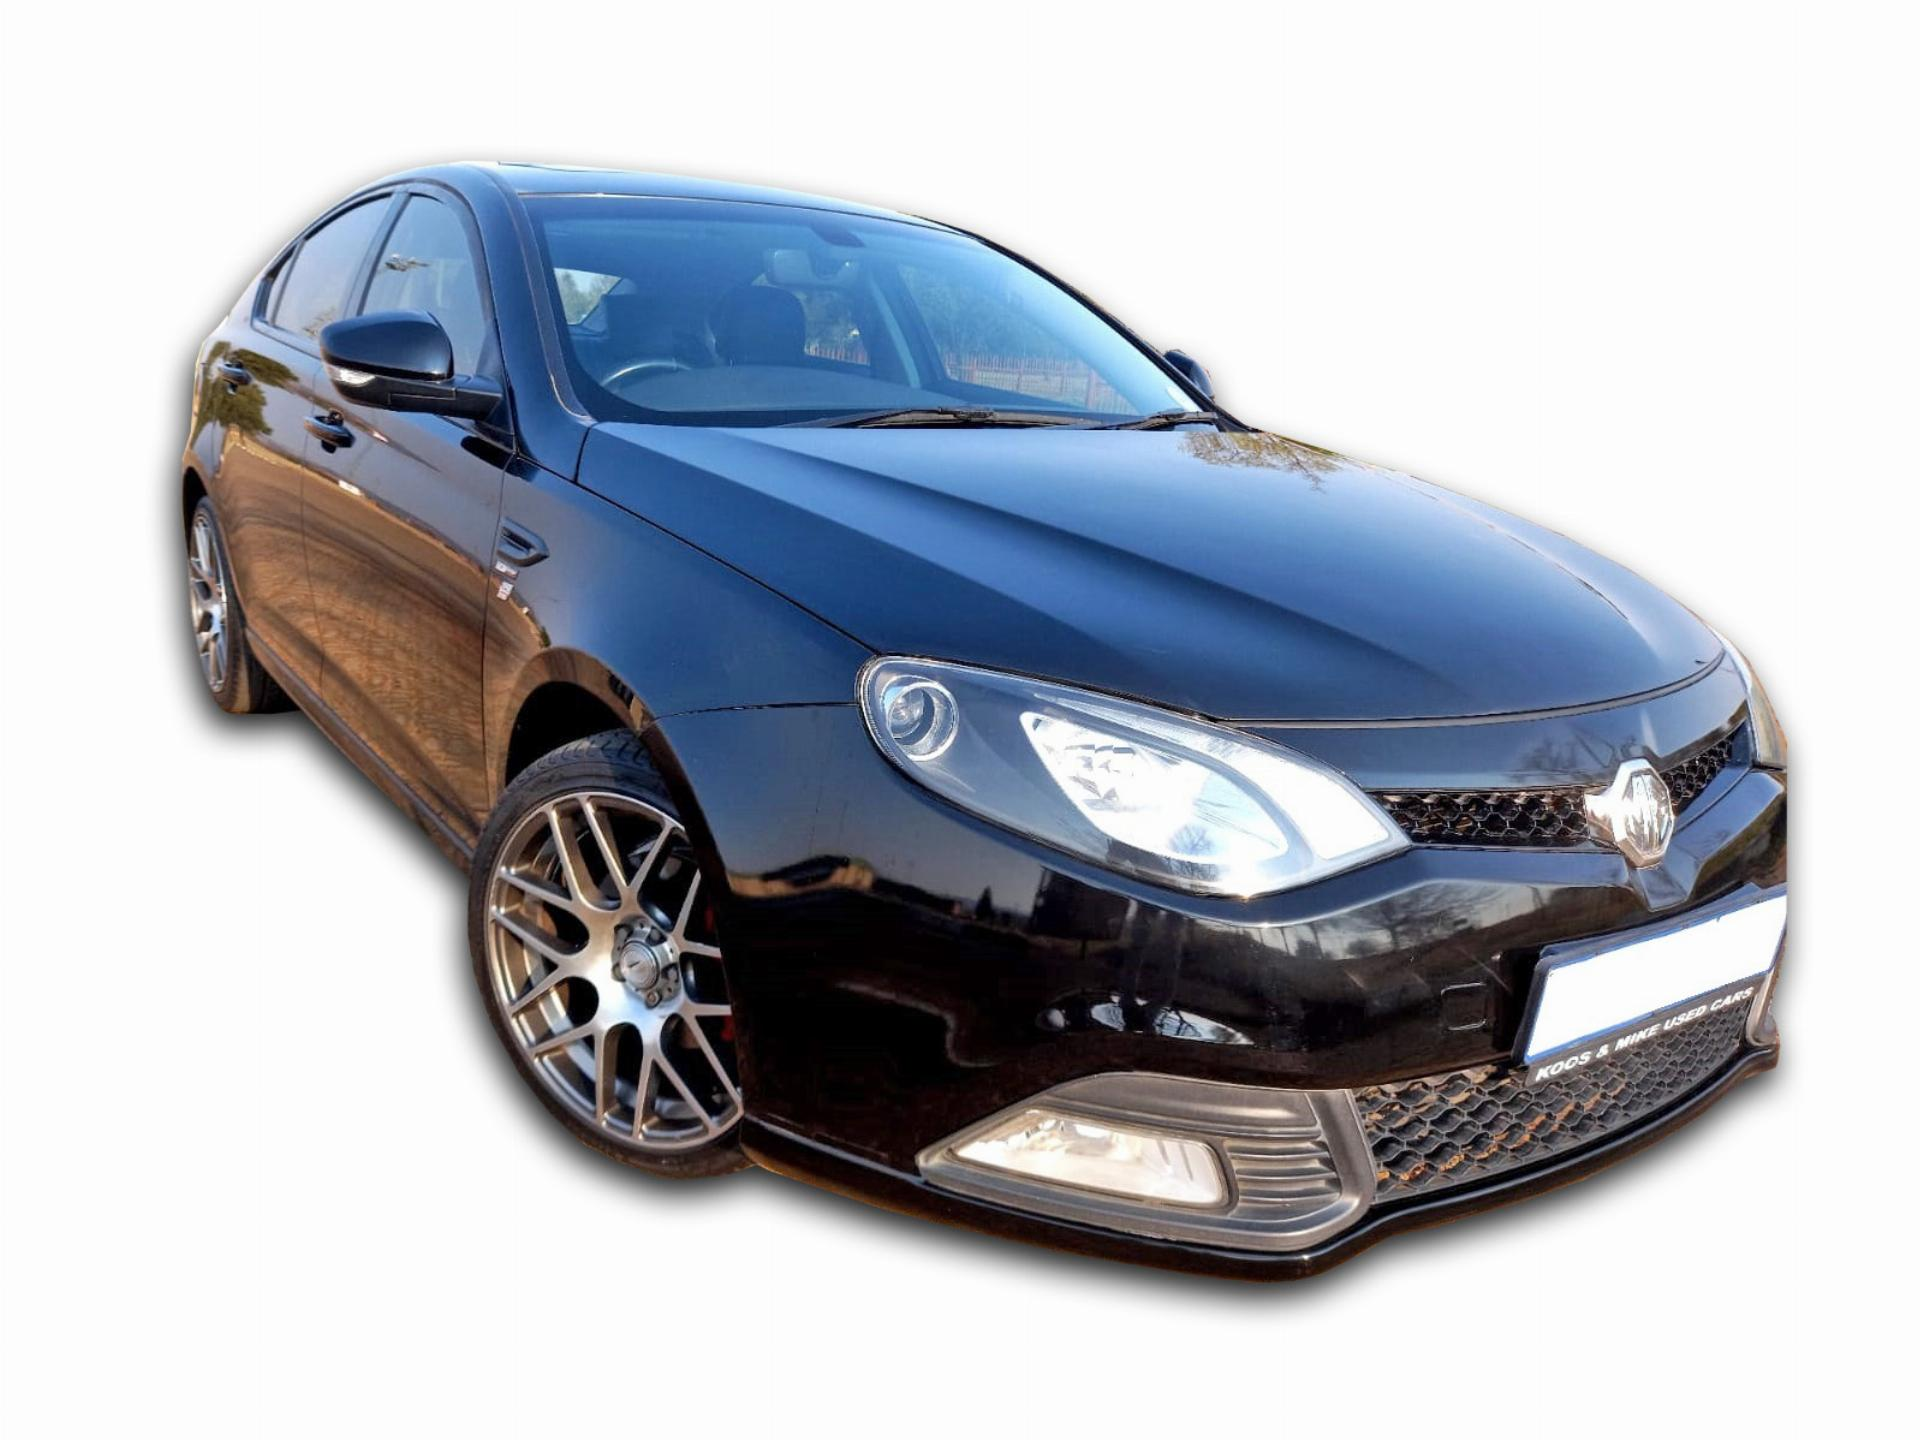 MG 6 1.8T Delux Motosport Edition 5DR